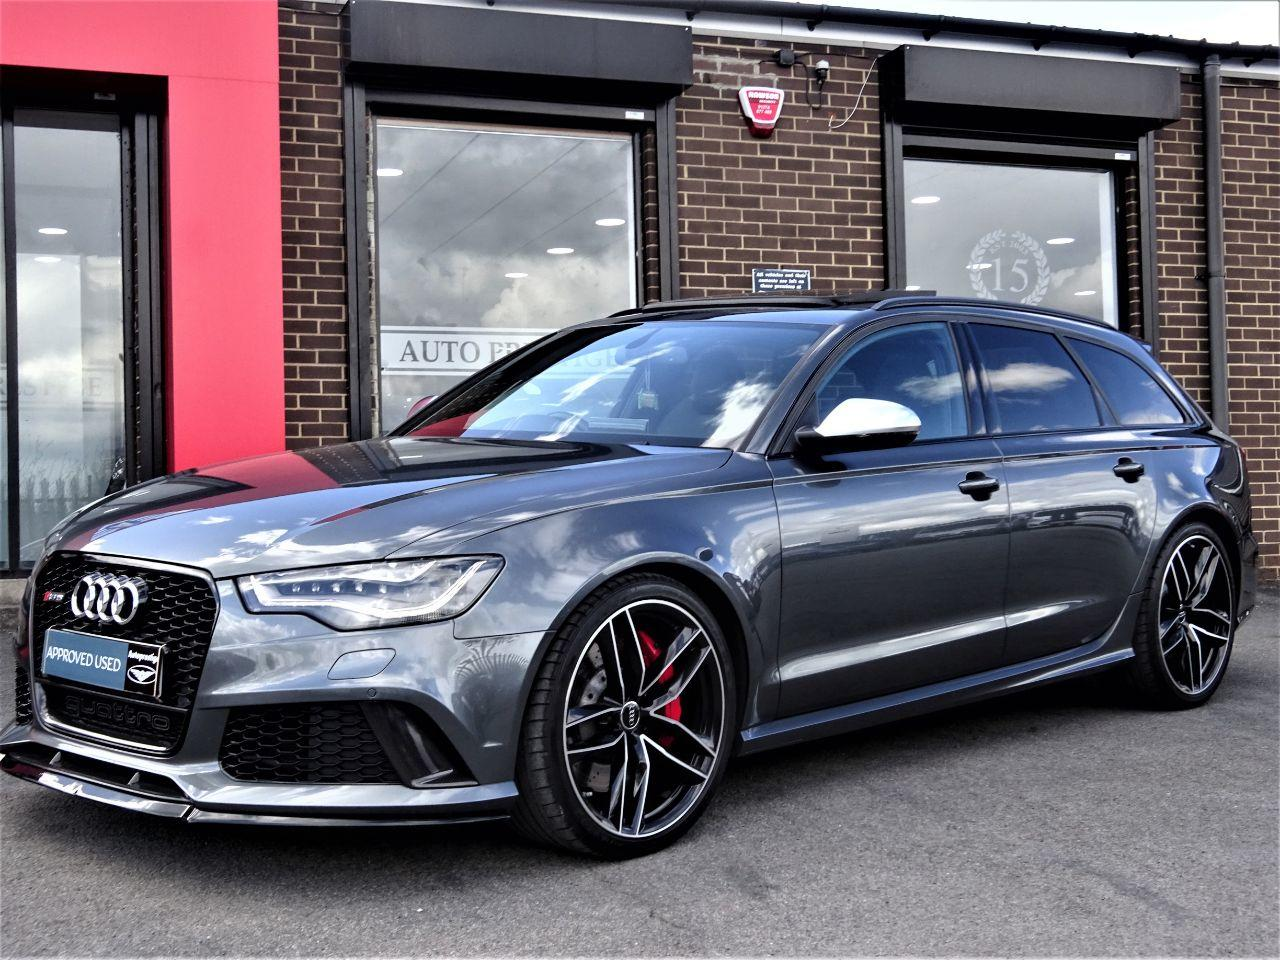 Audi RS6 4.0T FSI V8 Bi-Turbo RS6 Quattro 5dr Tip Auto HIGH SPEC LOW MILEAGE Estate Petrol Daytona Grey at Autoprestige Bradford